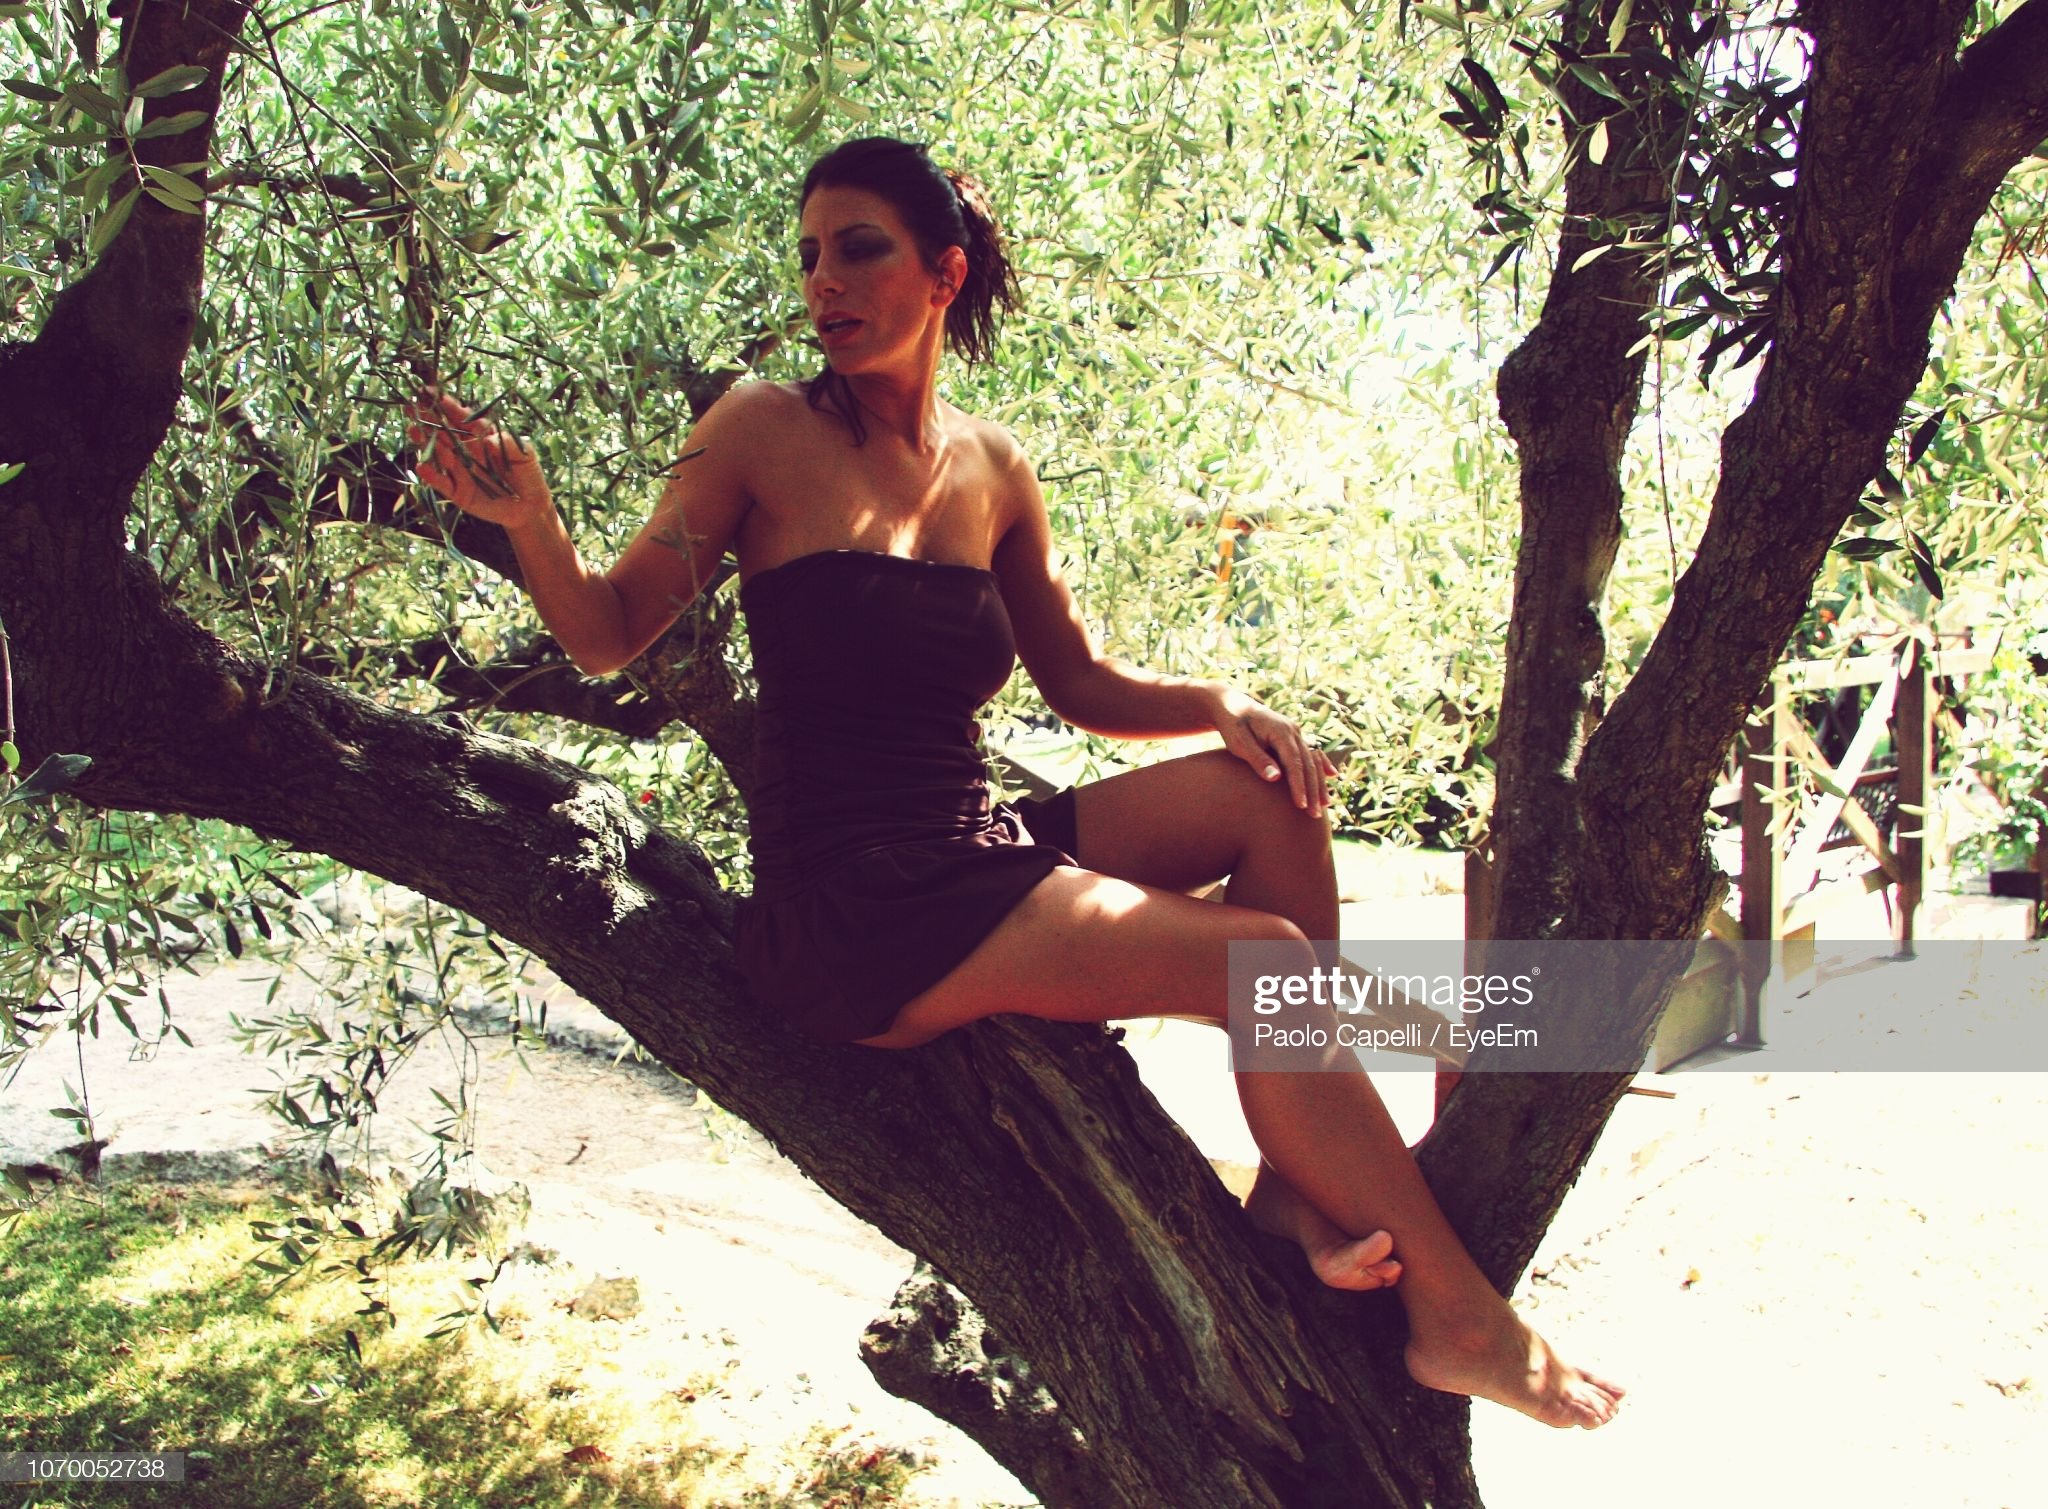 https://media.gettyimages.com/photos/beautiful-woman-sitting-on-tree-picture-id1070052738?s=2048x2048